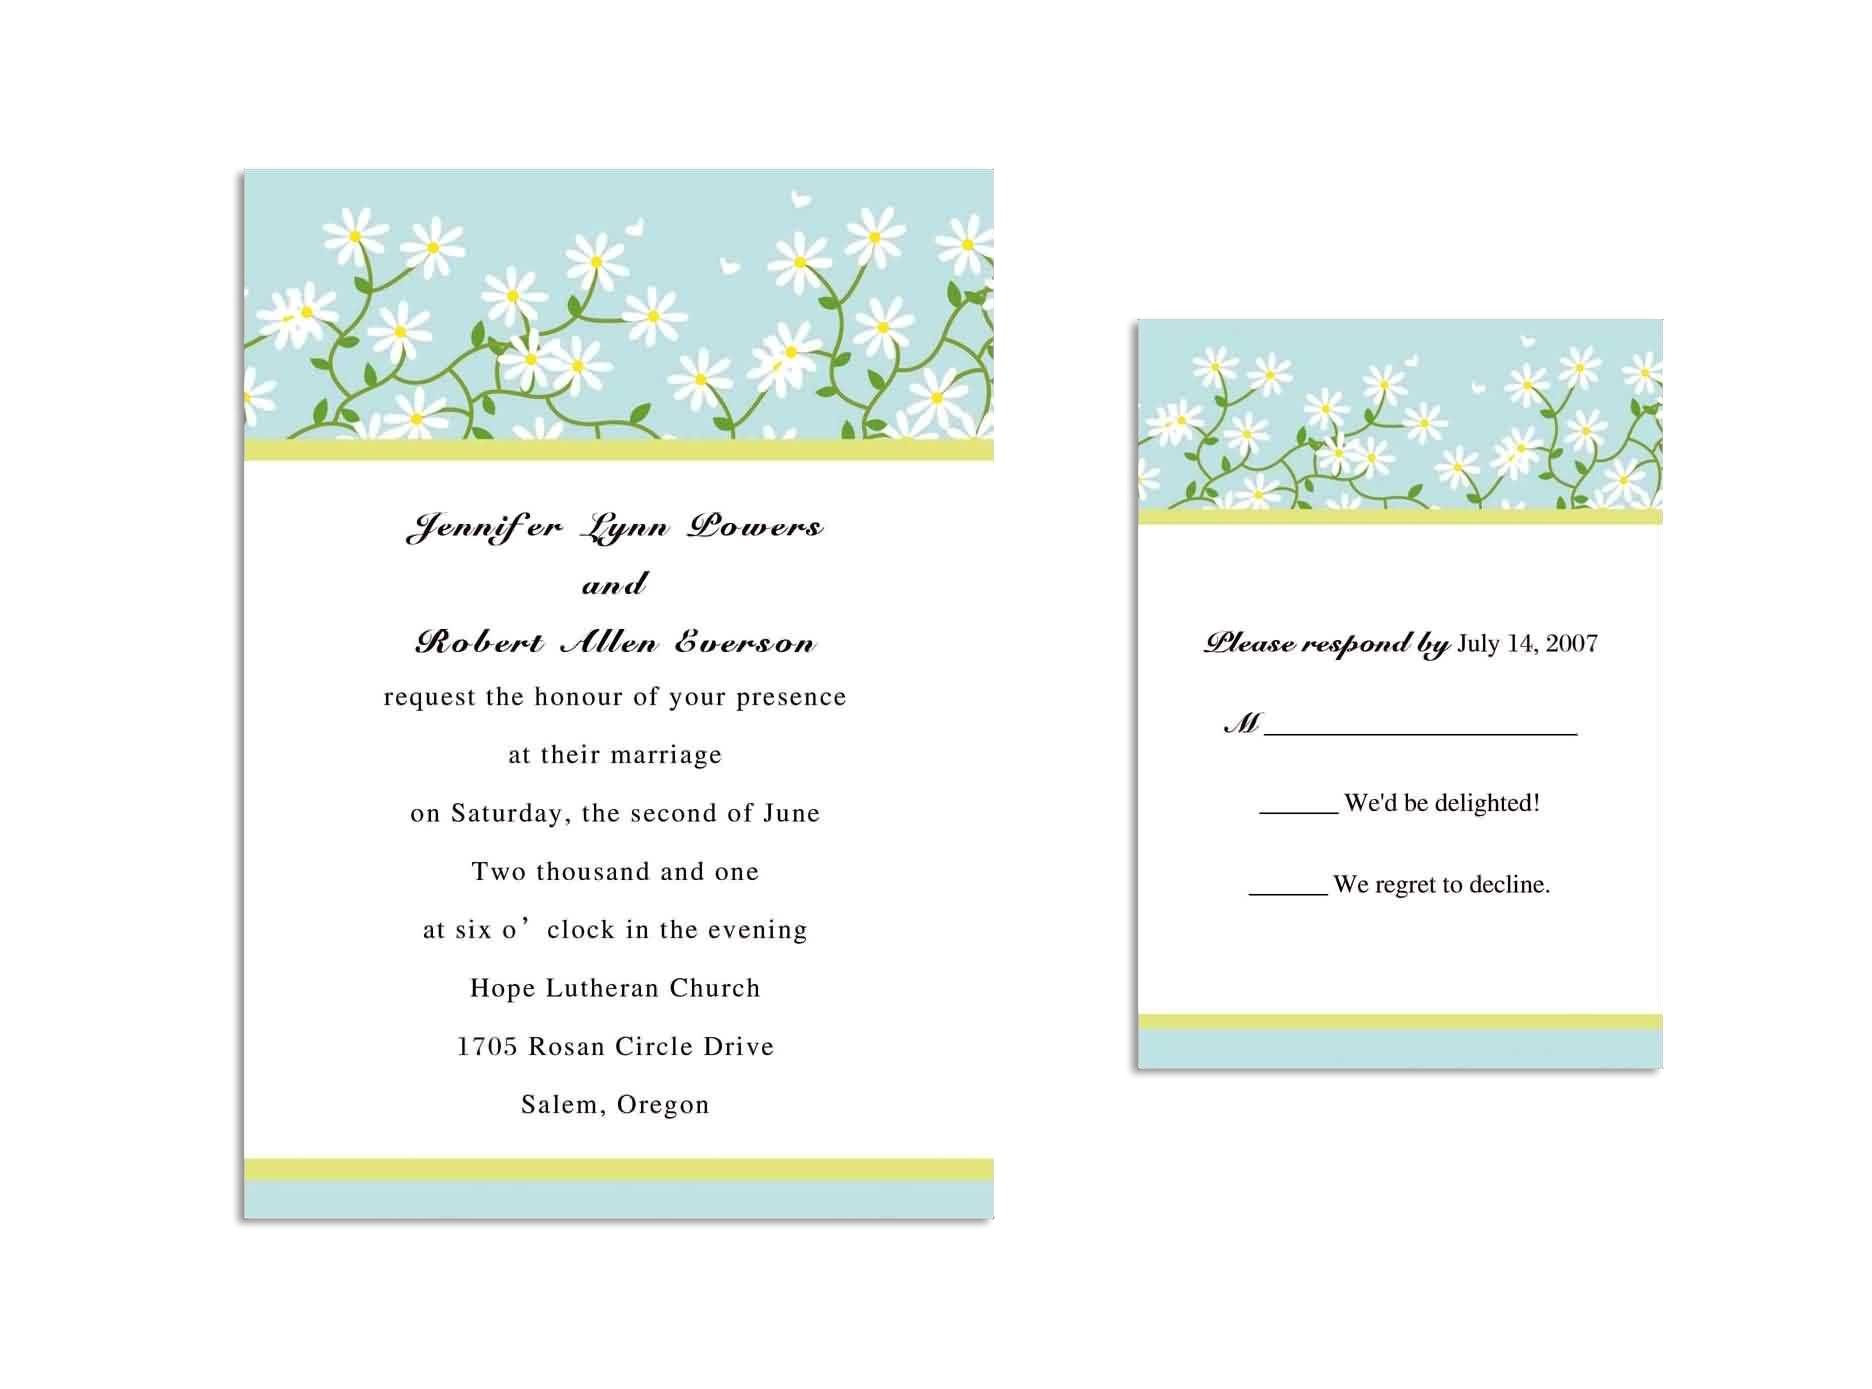 wedding invitations and response cards all in one